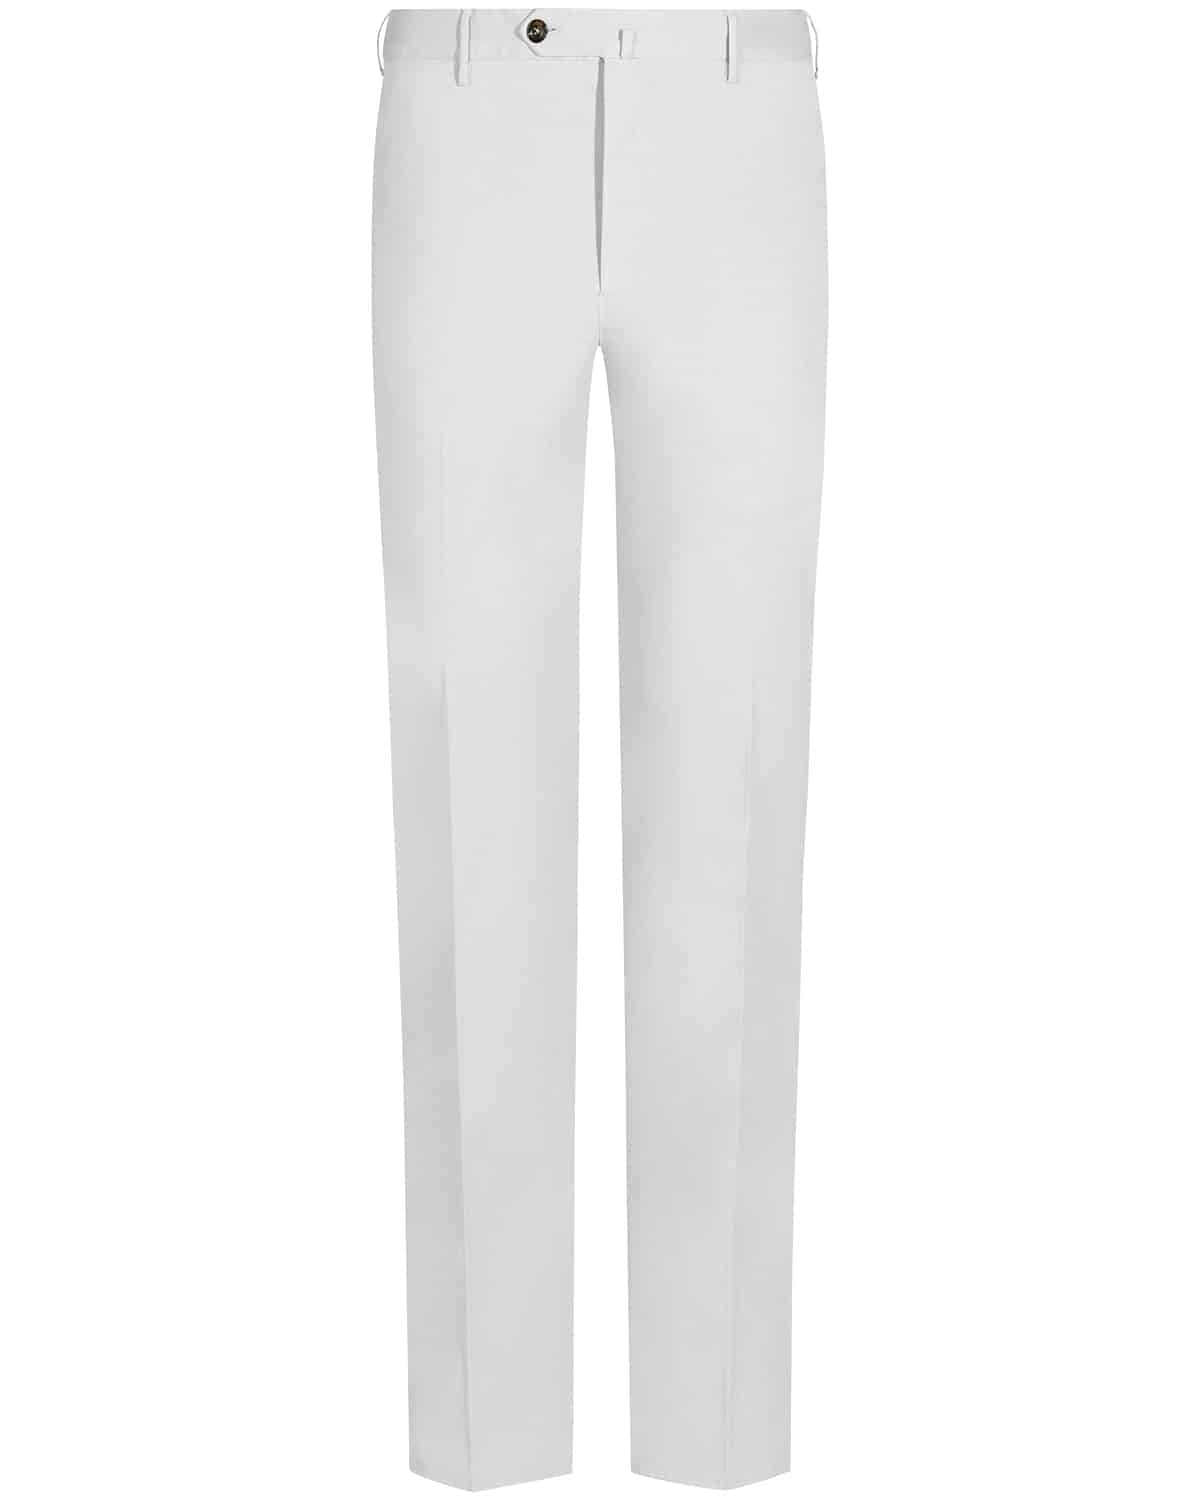 PT 01, Spring-Summer Collection 2019, Chino, white, weiß, Hose, Slim Fit,